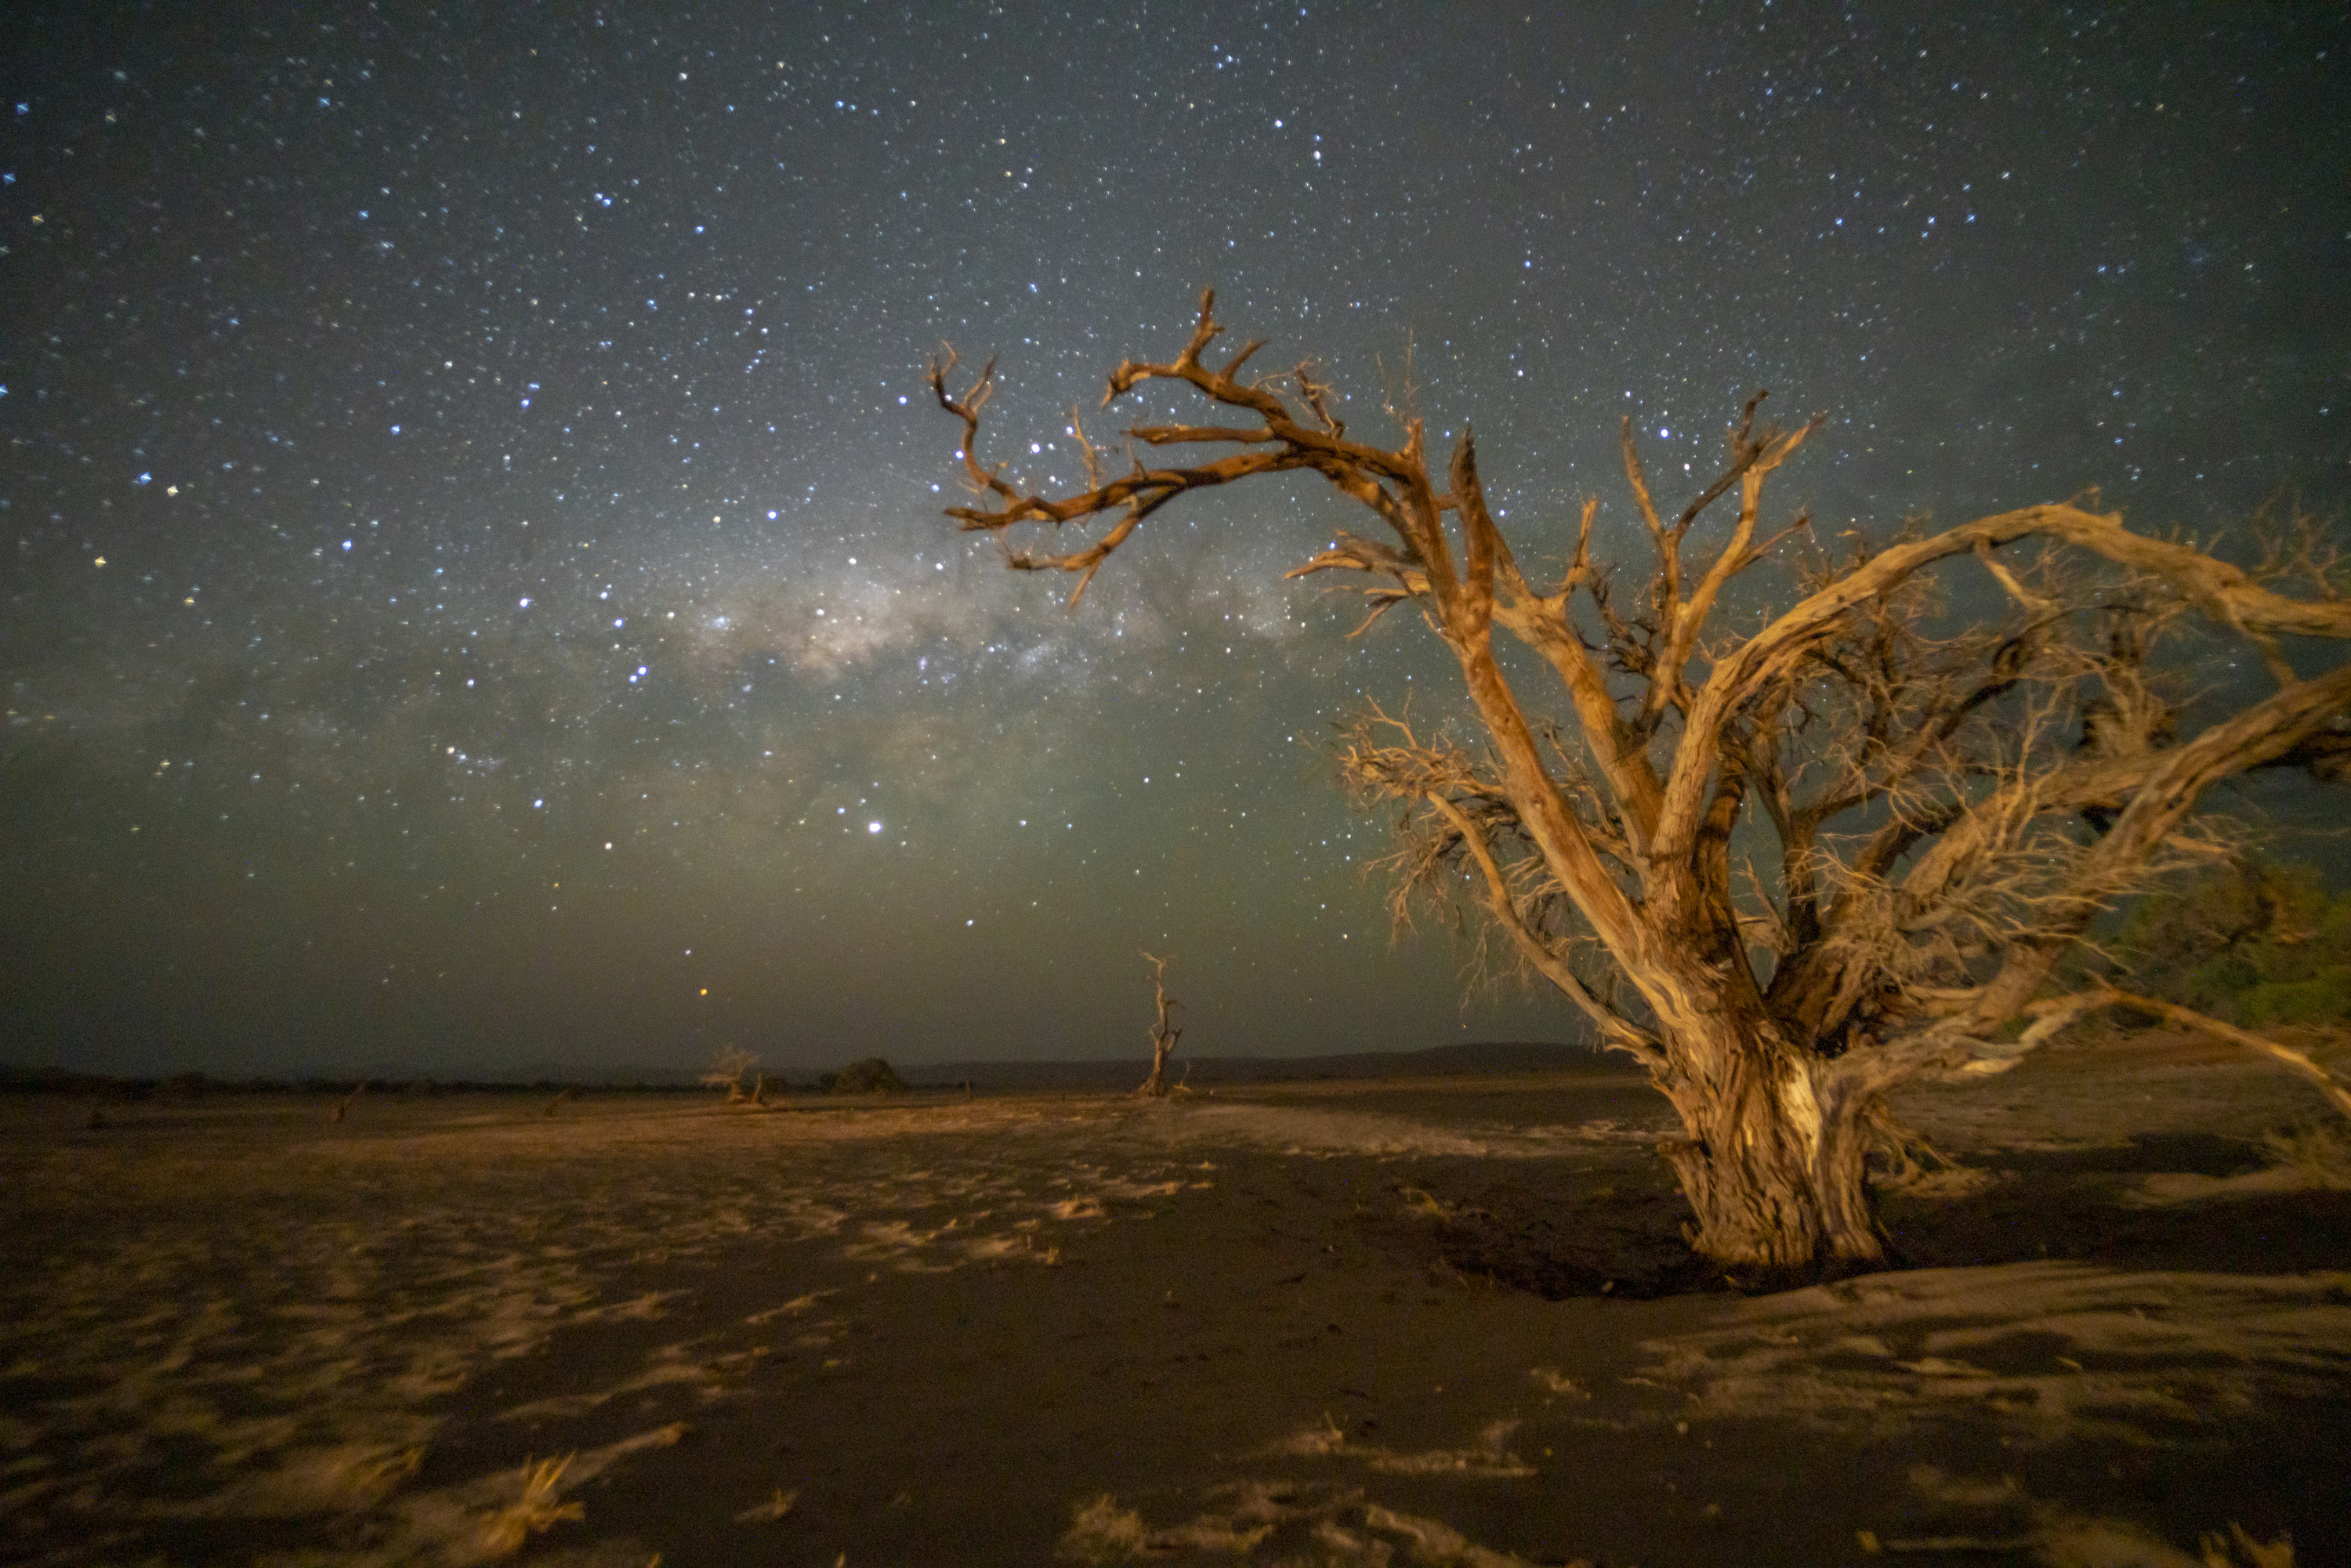 Large dead trees in the desert foreground a star-speckled sky.